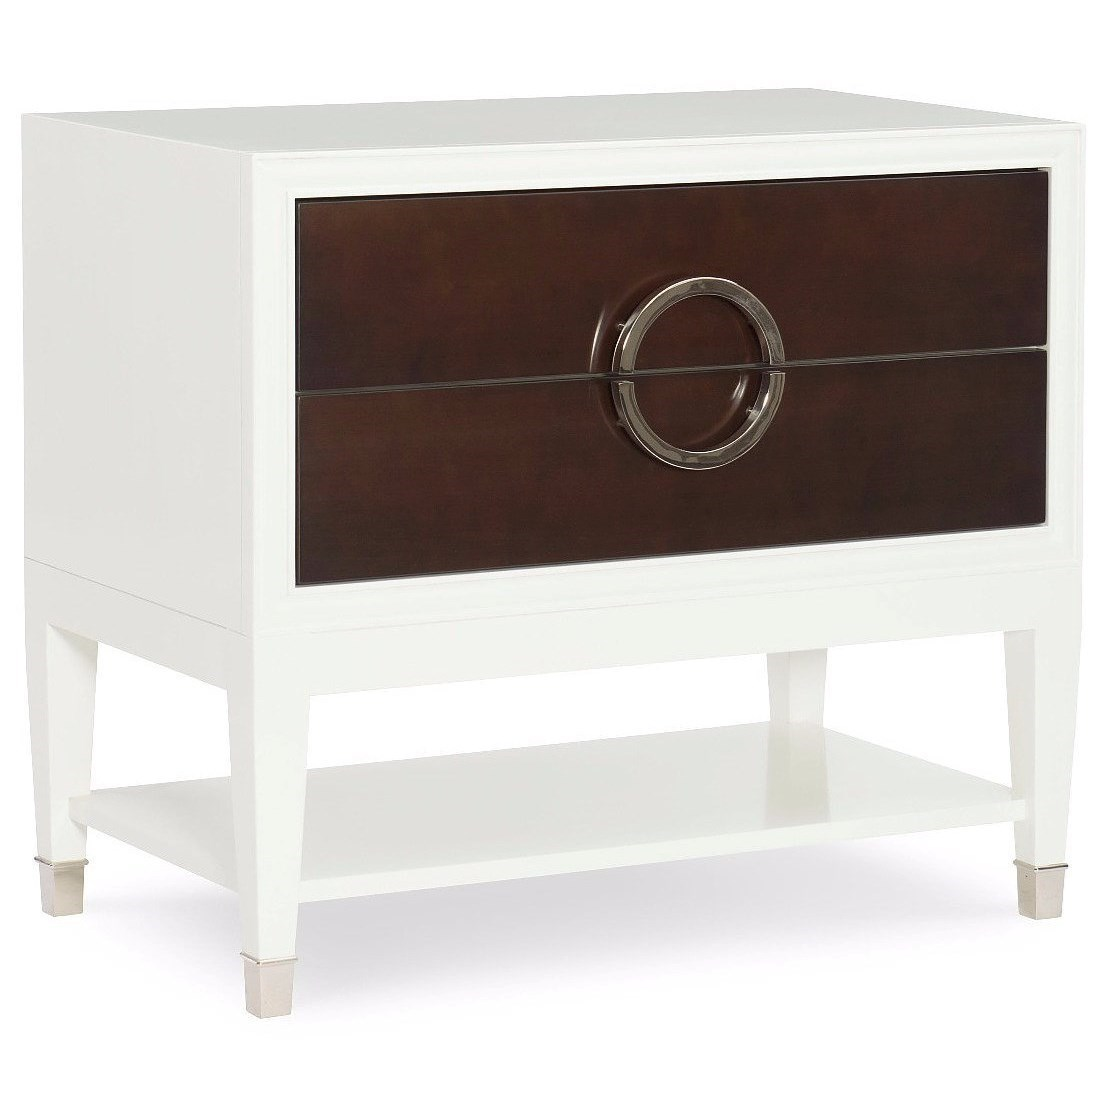 Exceptionnel Belle Meade Signature Bedroom Mansfield Nightstand With Full Extension Soft  Close Drawers